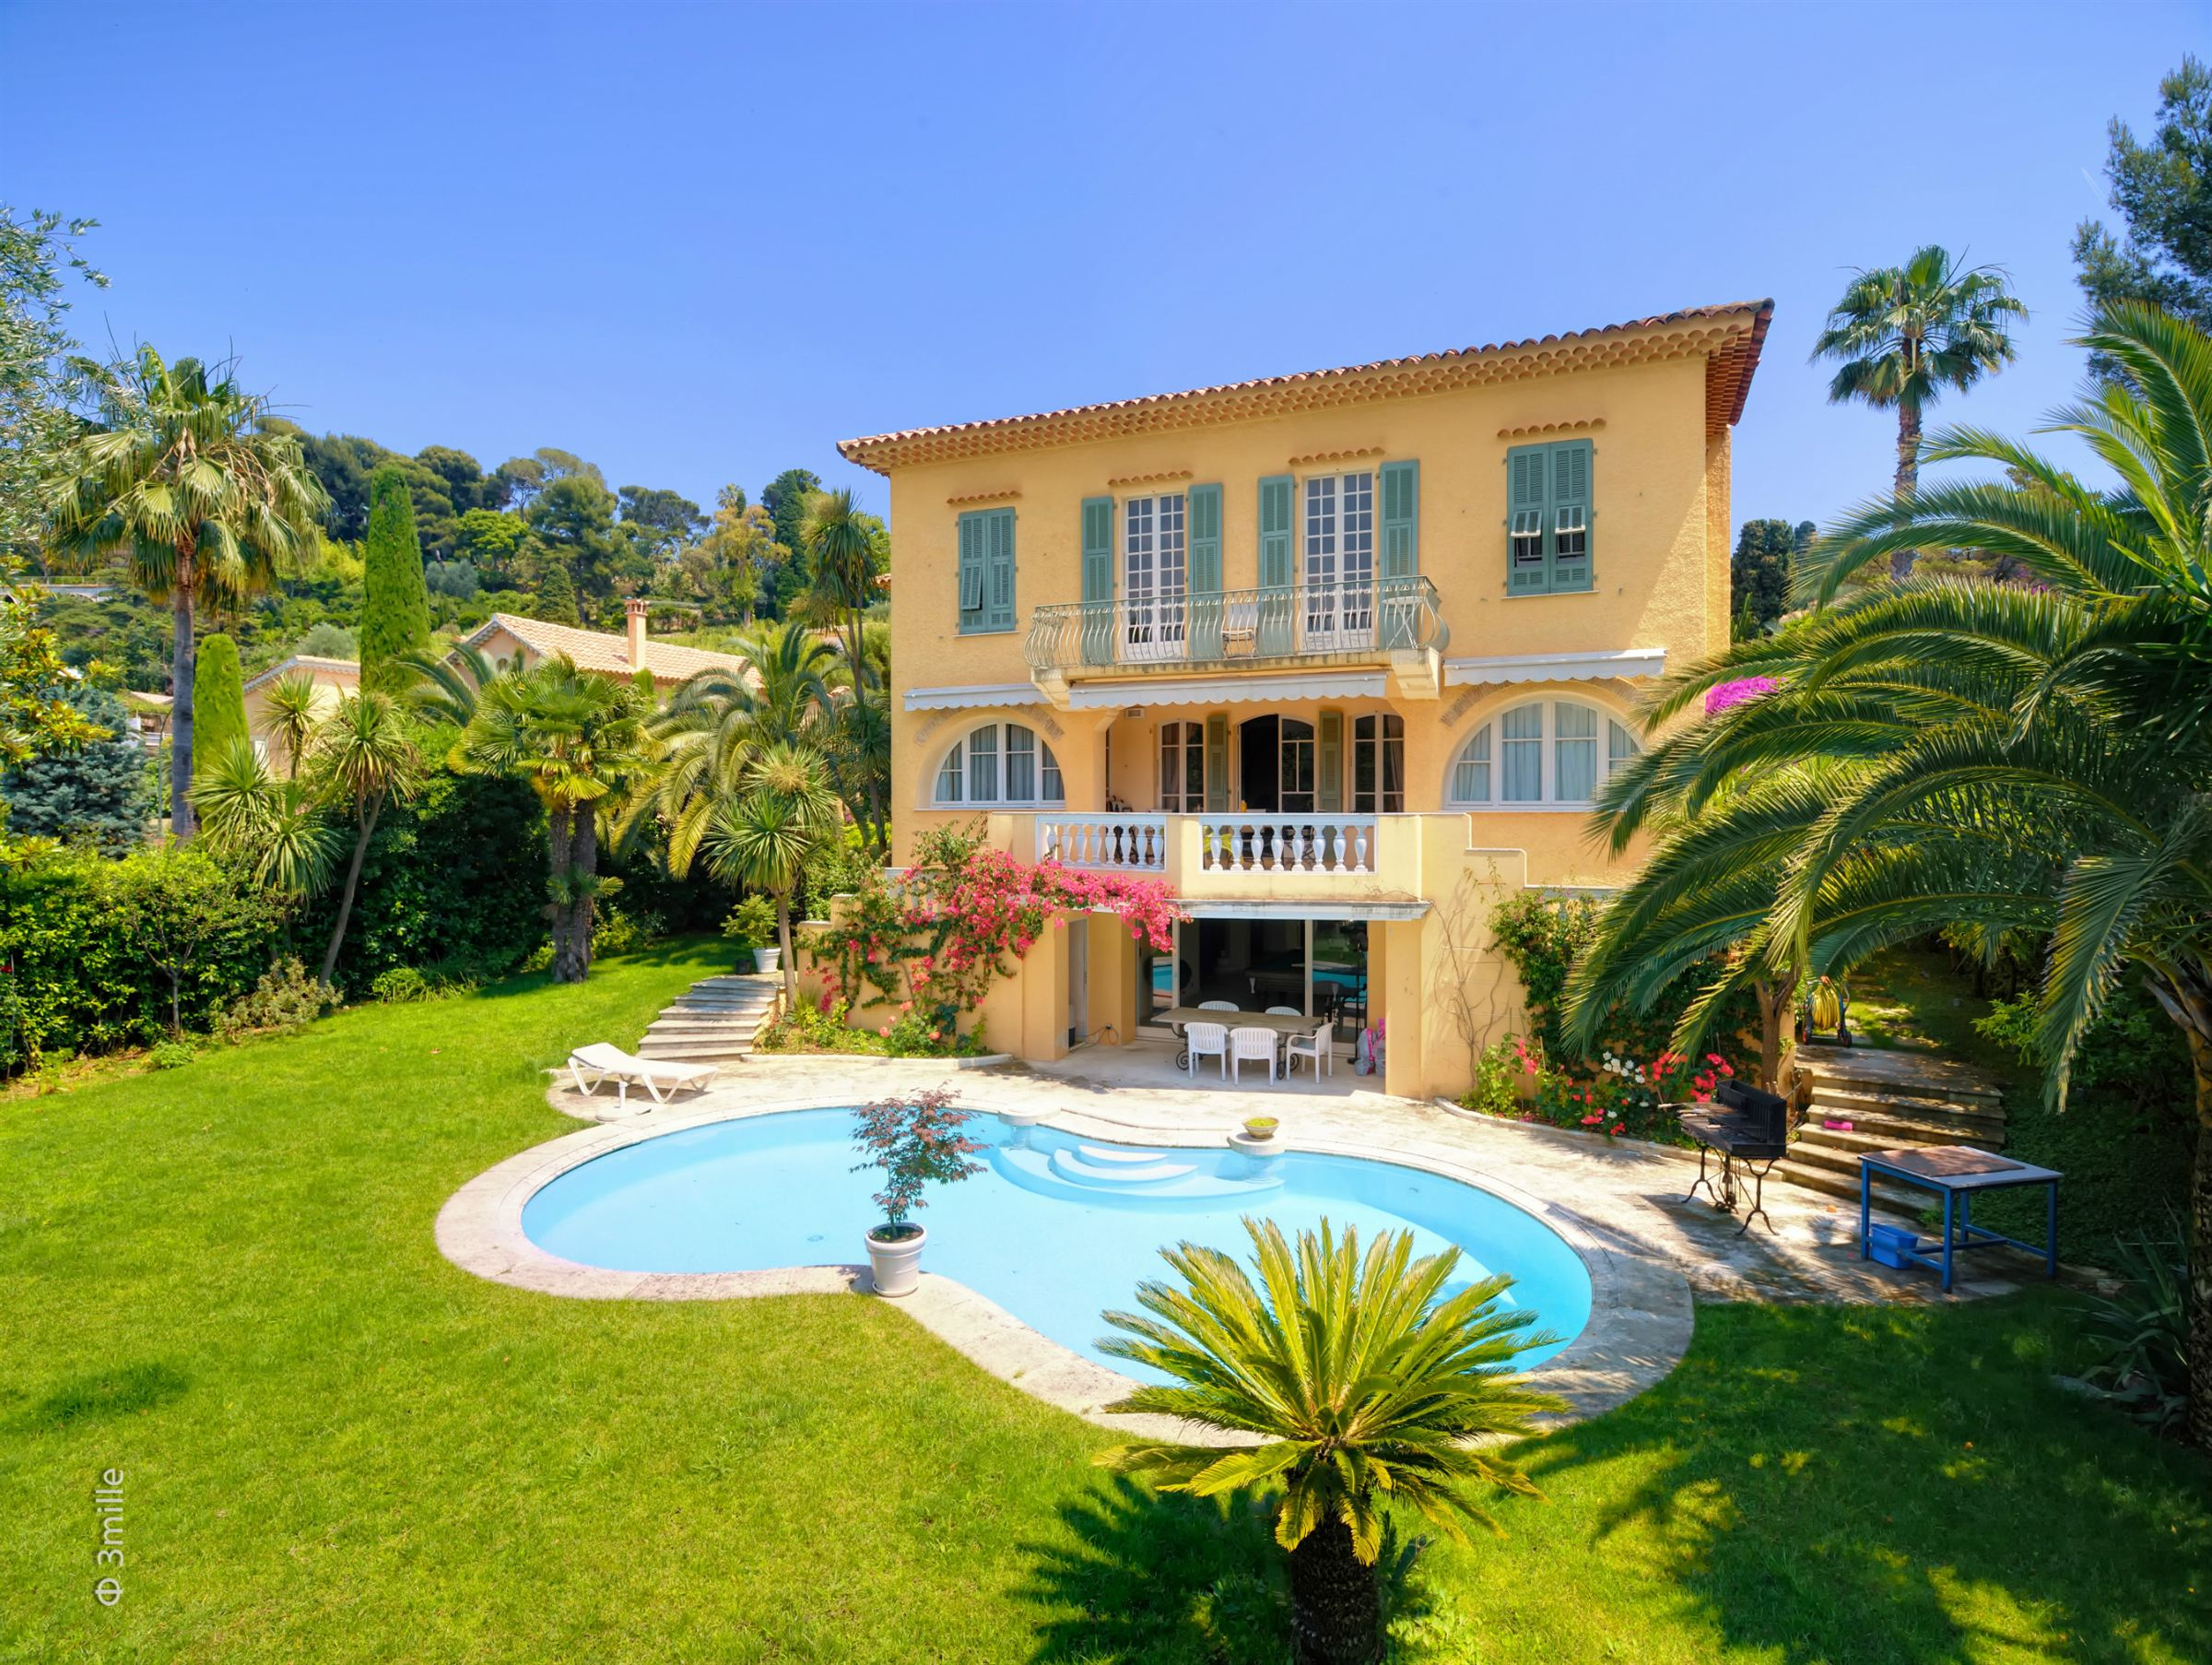 Casa Unifamiliar por un Venta en Charming Villa for sale in a private domain, Cap Ferrat Other Provence-Alpes-Cote D'Azur, Provincia - Alpes - Costa Azul, 06230 Francia